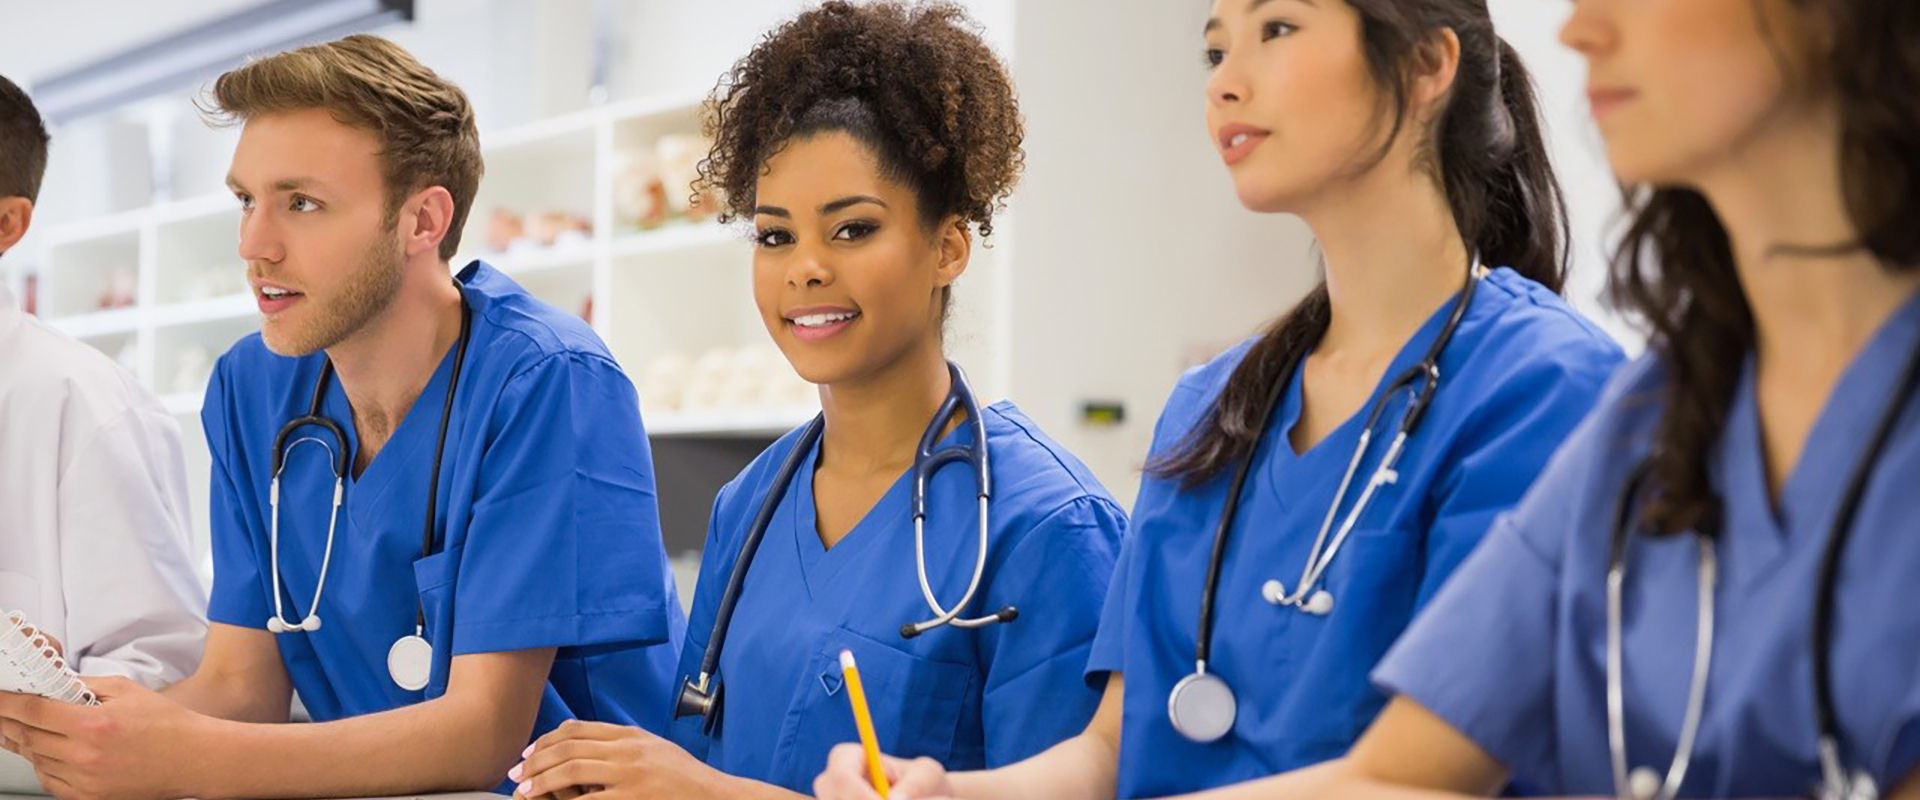 Medical Assistant Certification Training School in GA & FL |Medical Assistant Schools